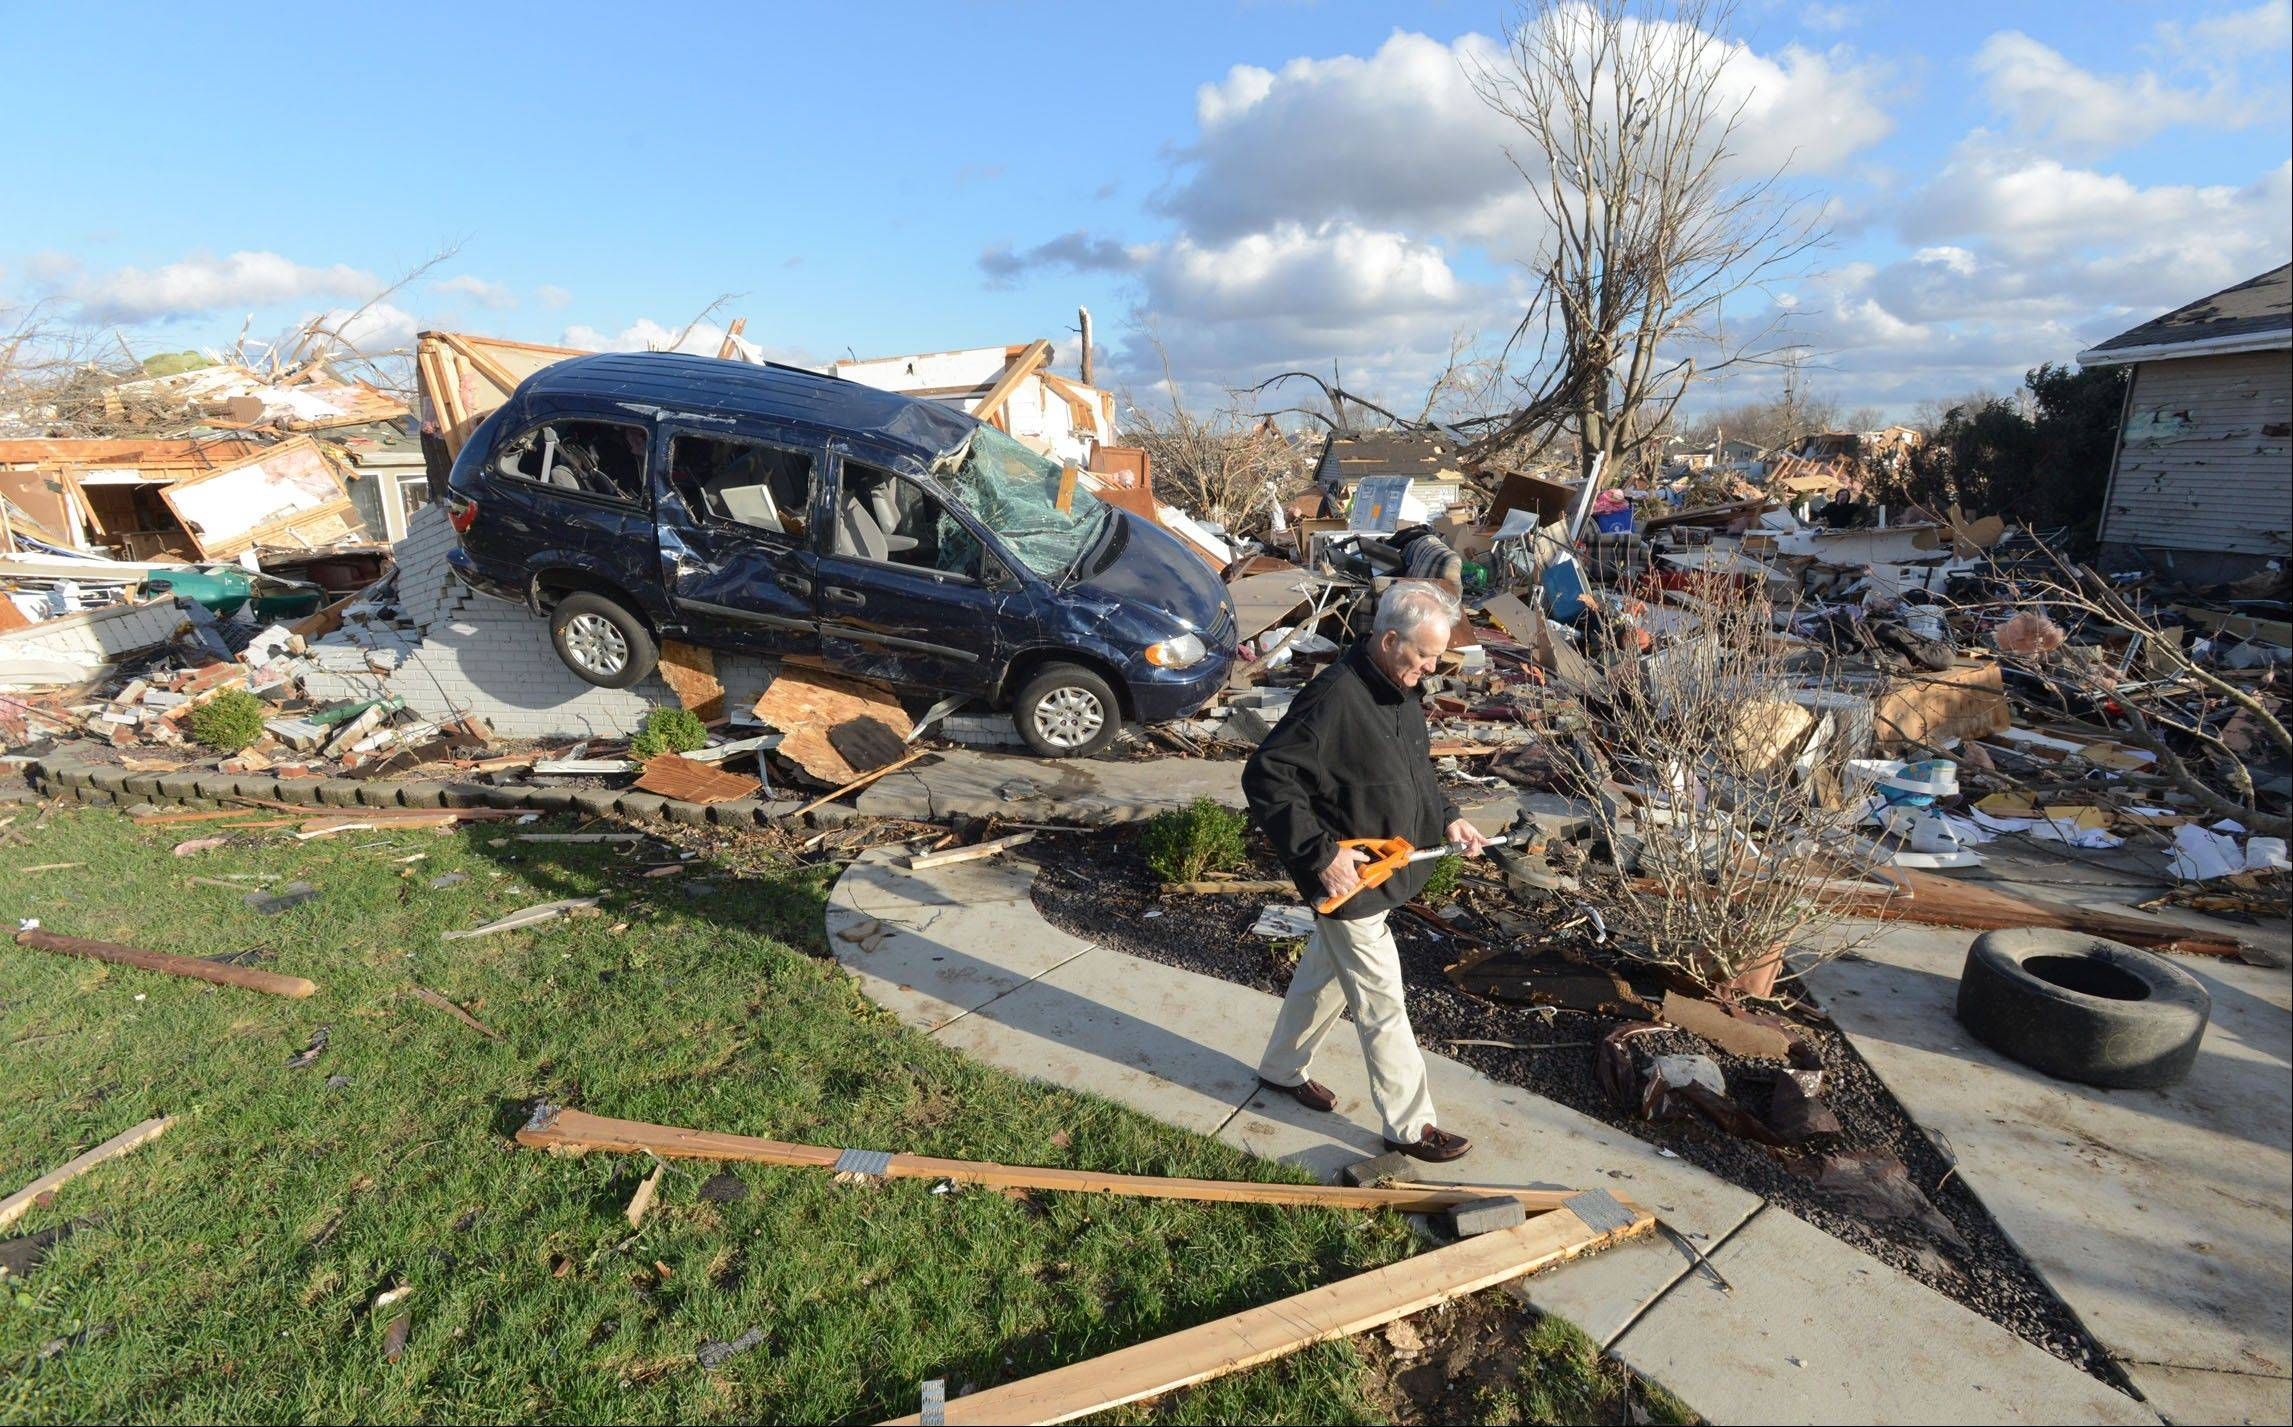 Richard Miller of Washington, Illinois salvages items from his brothers home, after a tornado leveled a subdivision on the North side of Washington, Ill., Sunday, Nov. 17, 2013. Intense thunderstorms and tornadoes swept across the Midwest, causing extensive damage in several central Illinois communities while sending people to their basements for shelter.